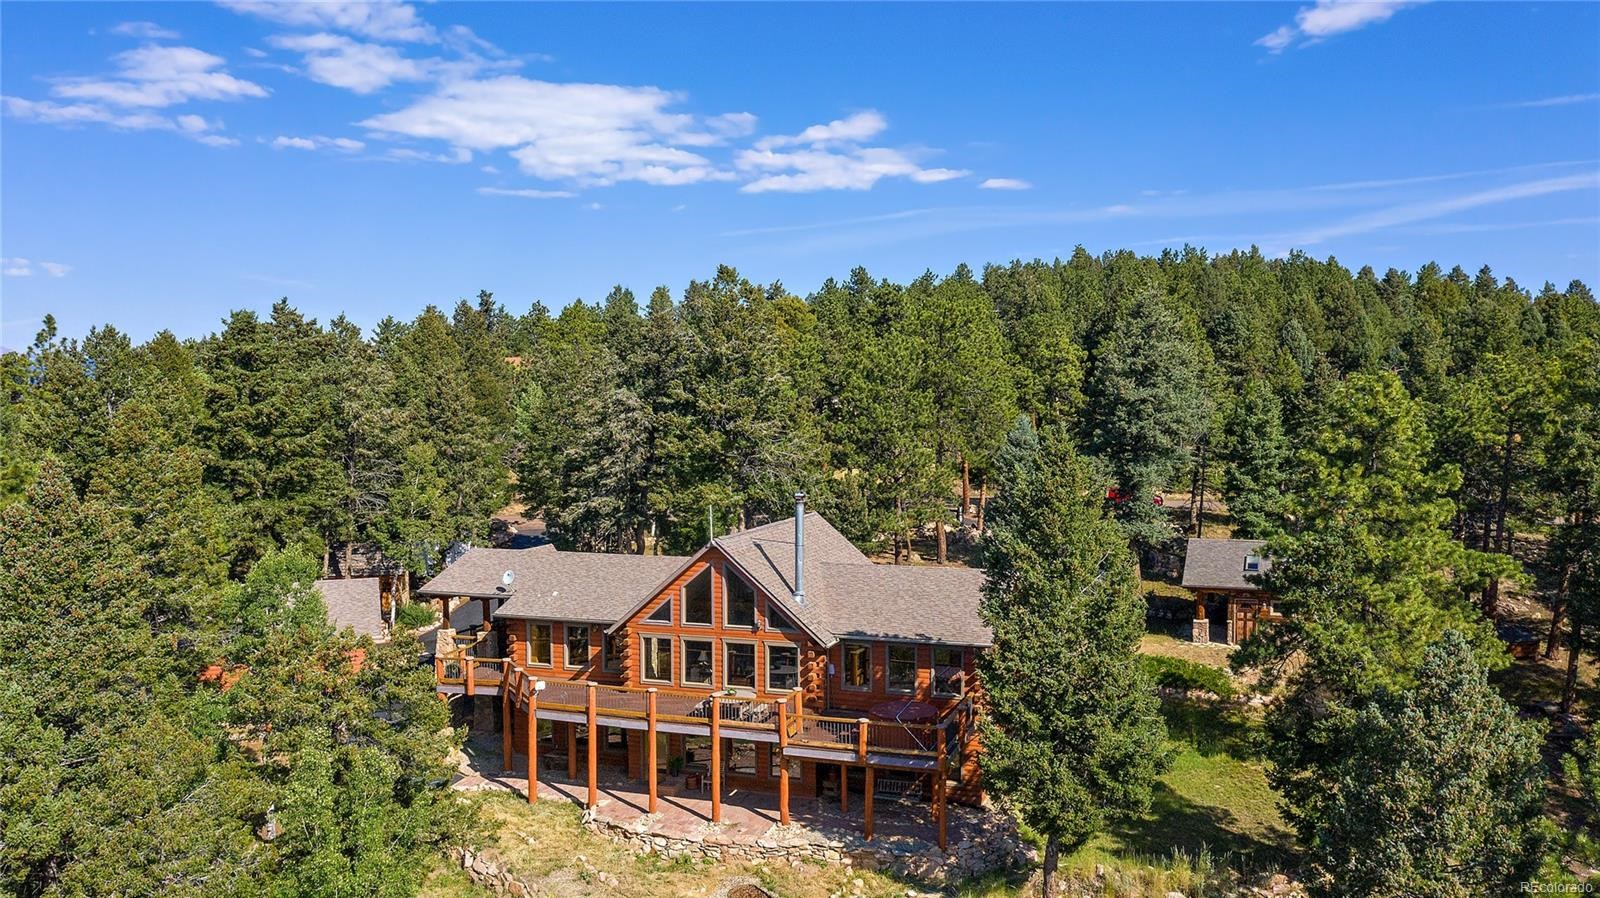 MLS# 1581293 - 1 - 13472 Riley Peak Road, Conifer, CO 80433